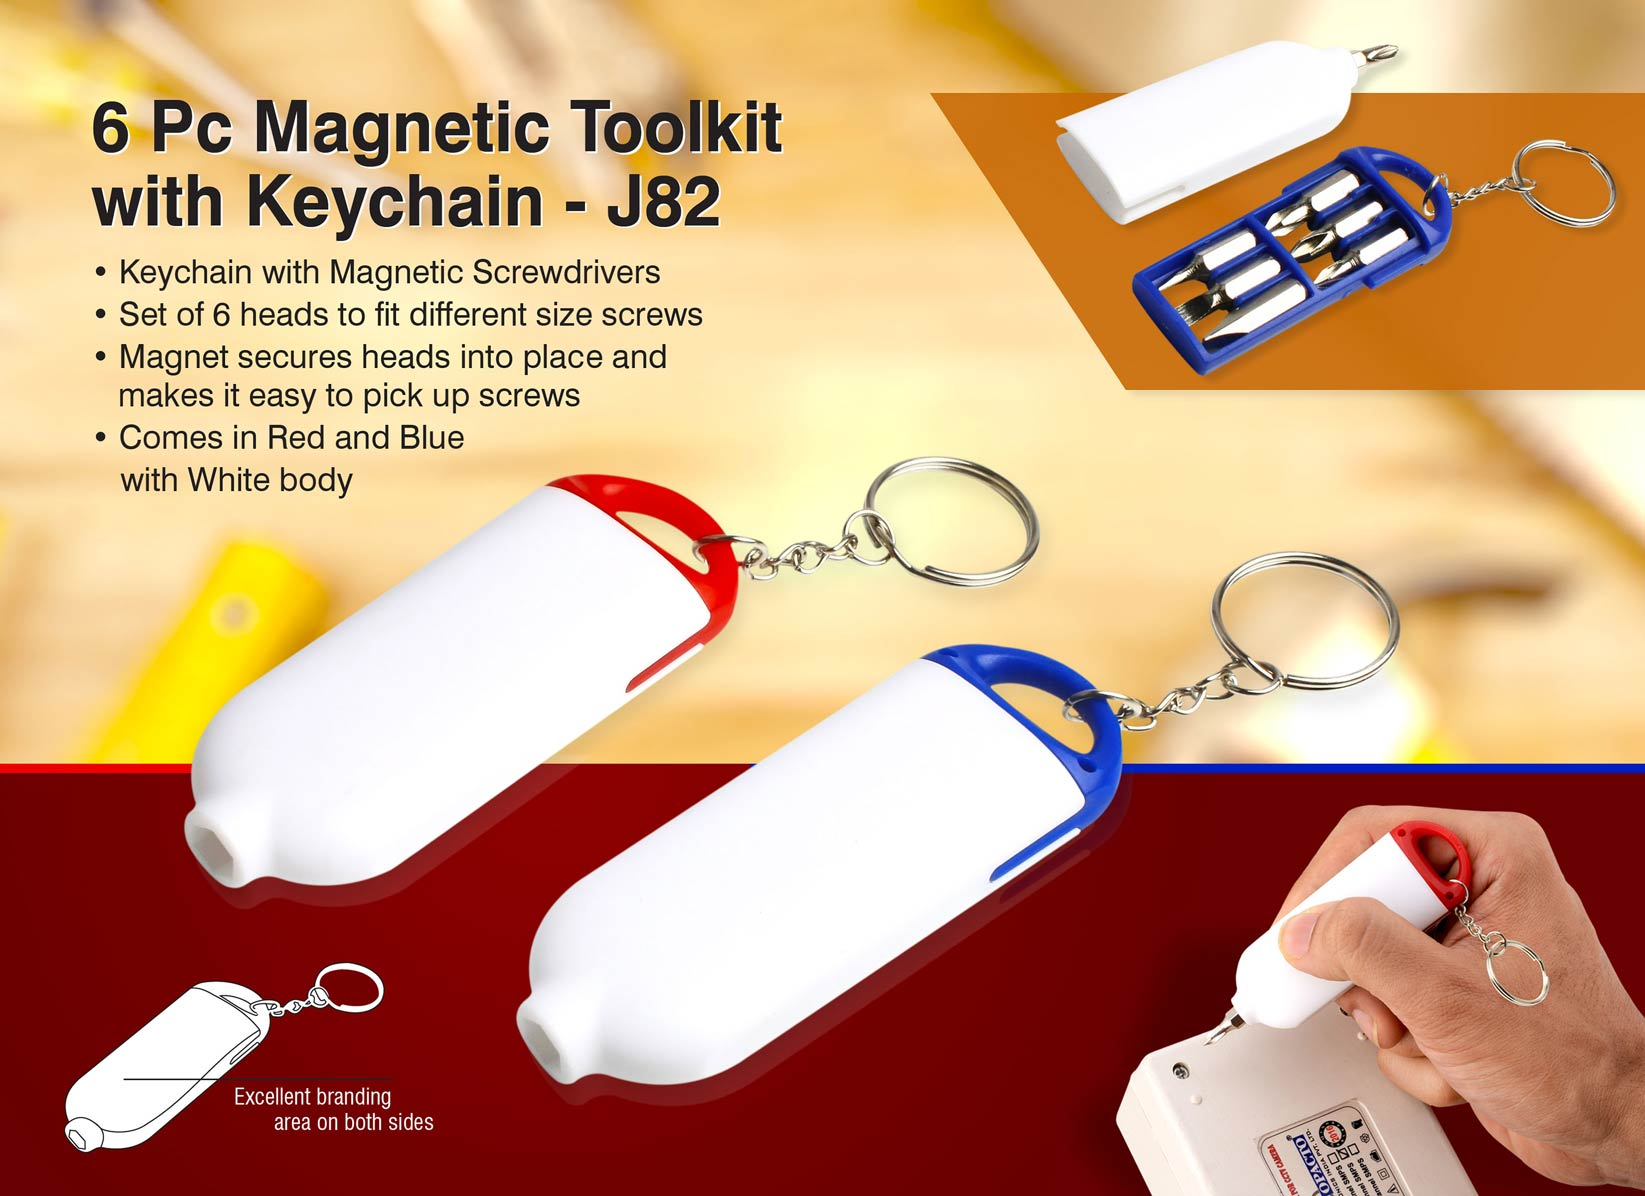 J82 - 6 pc magnetic toolkit with keychain